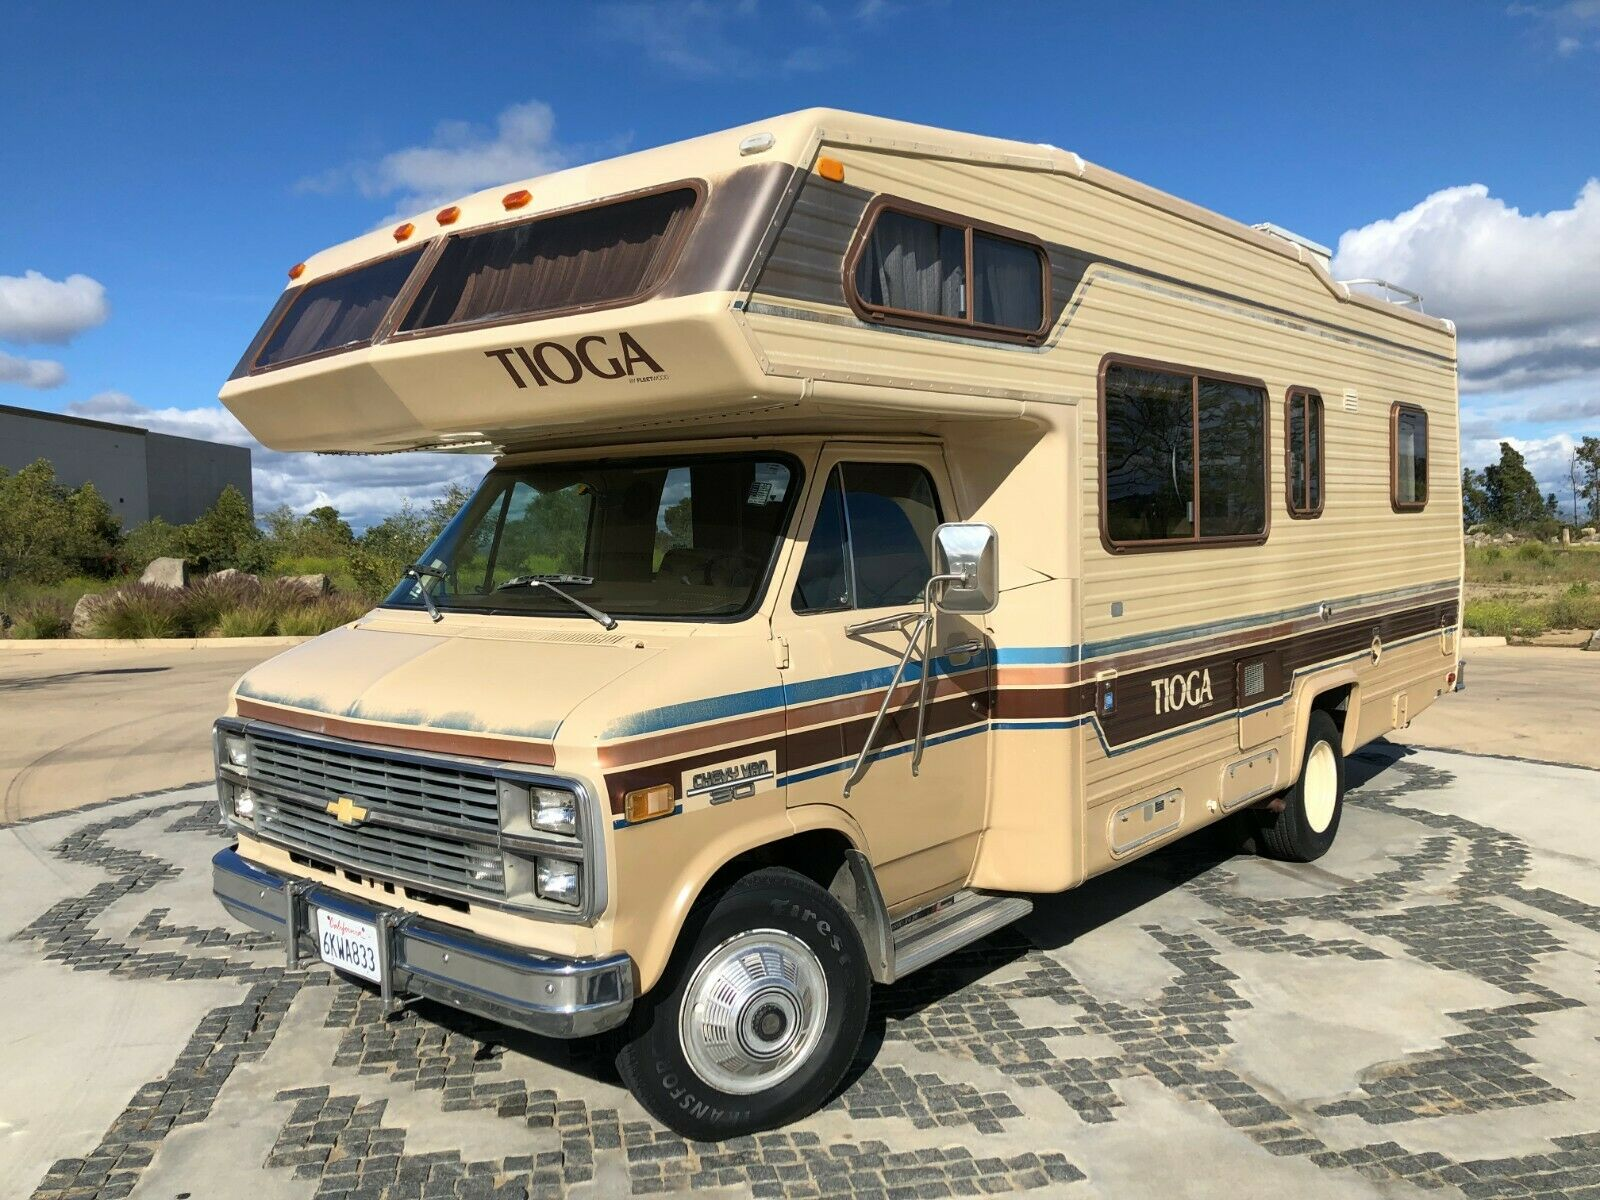 low miles 1984 Chevrolet Tioga Fleetwood G30 camper for sale